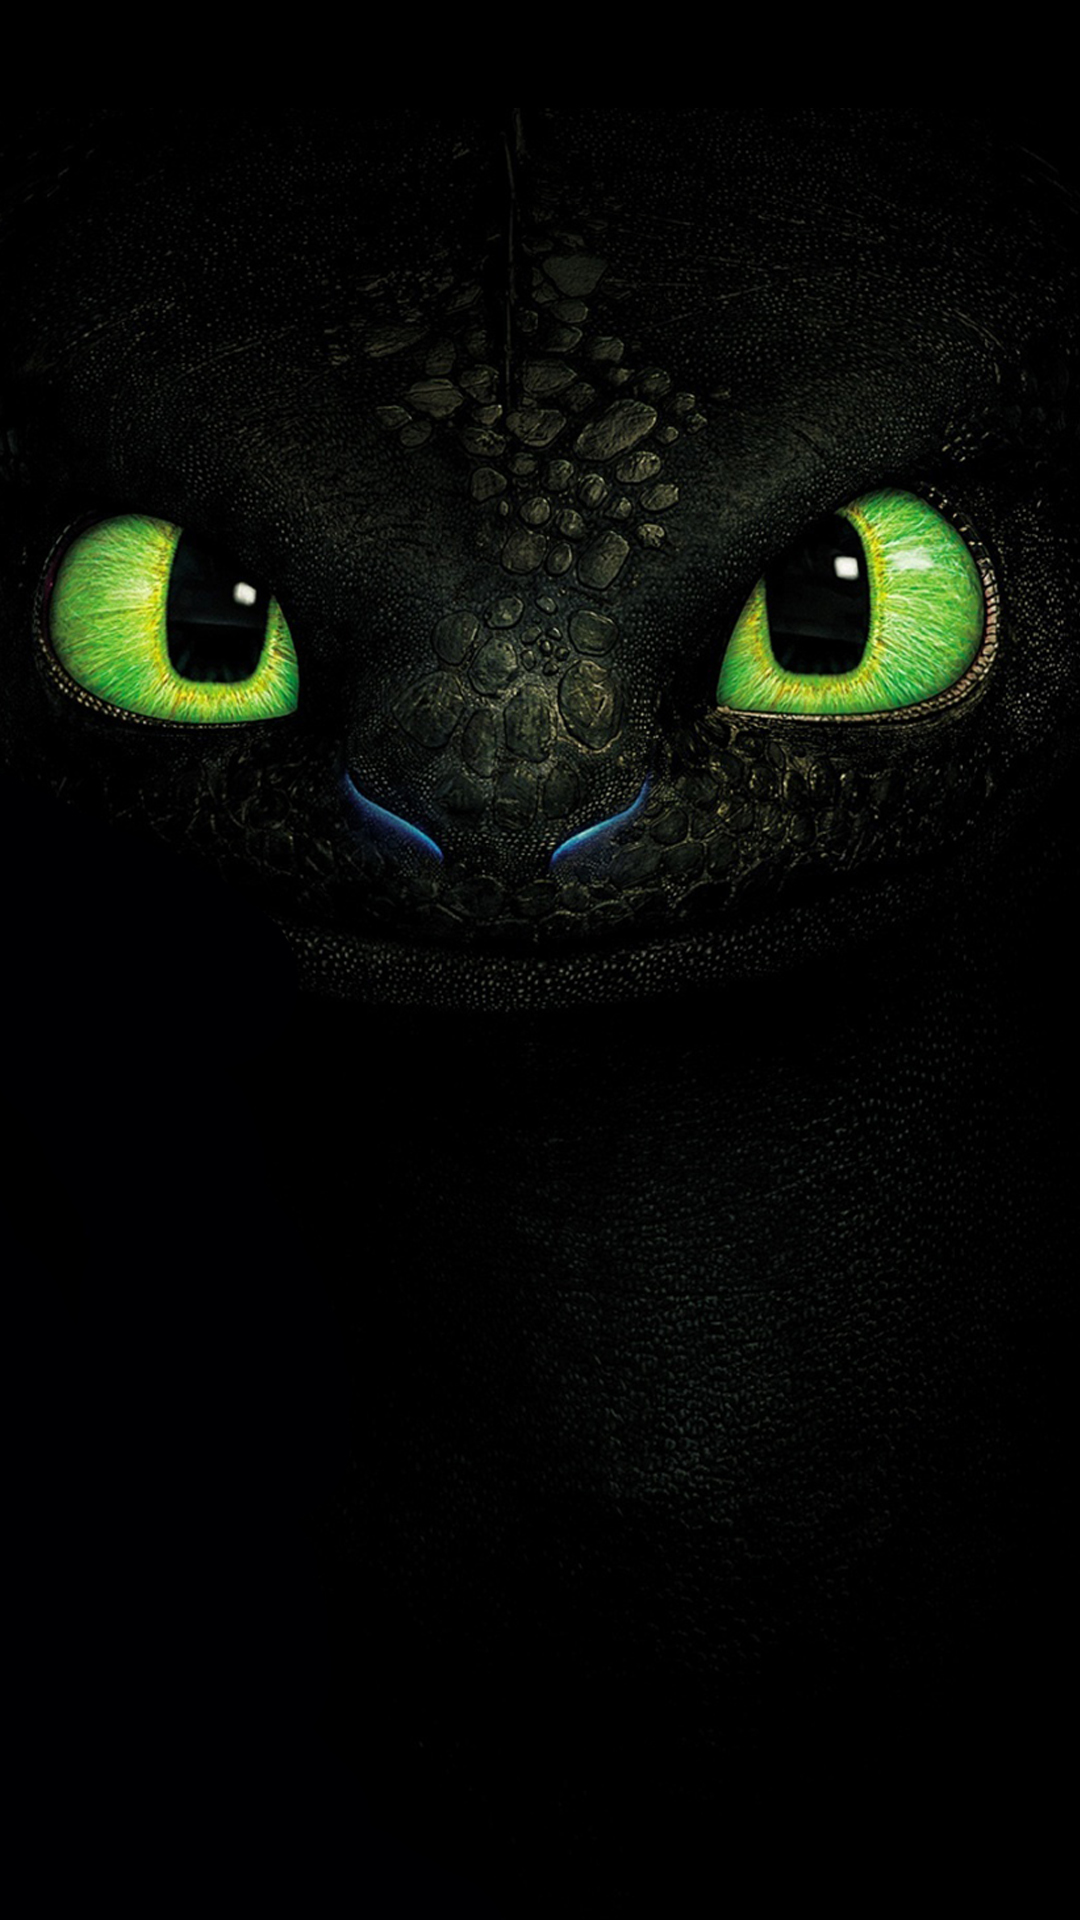 Cute Cartoon Wallpapers For Mobile Hd Toothless Hd Wallpaper For Your Mobile Phone